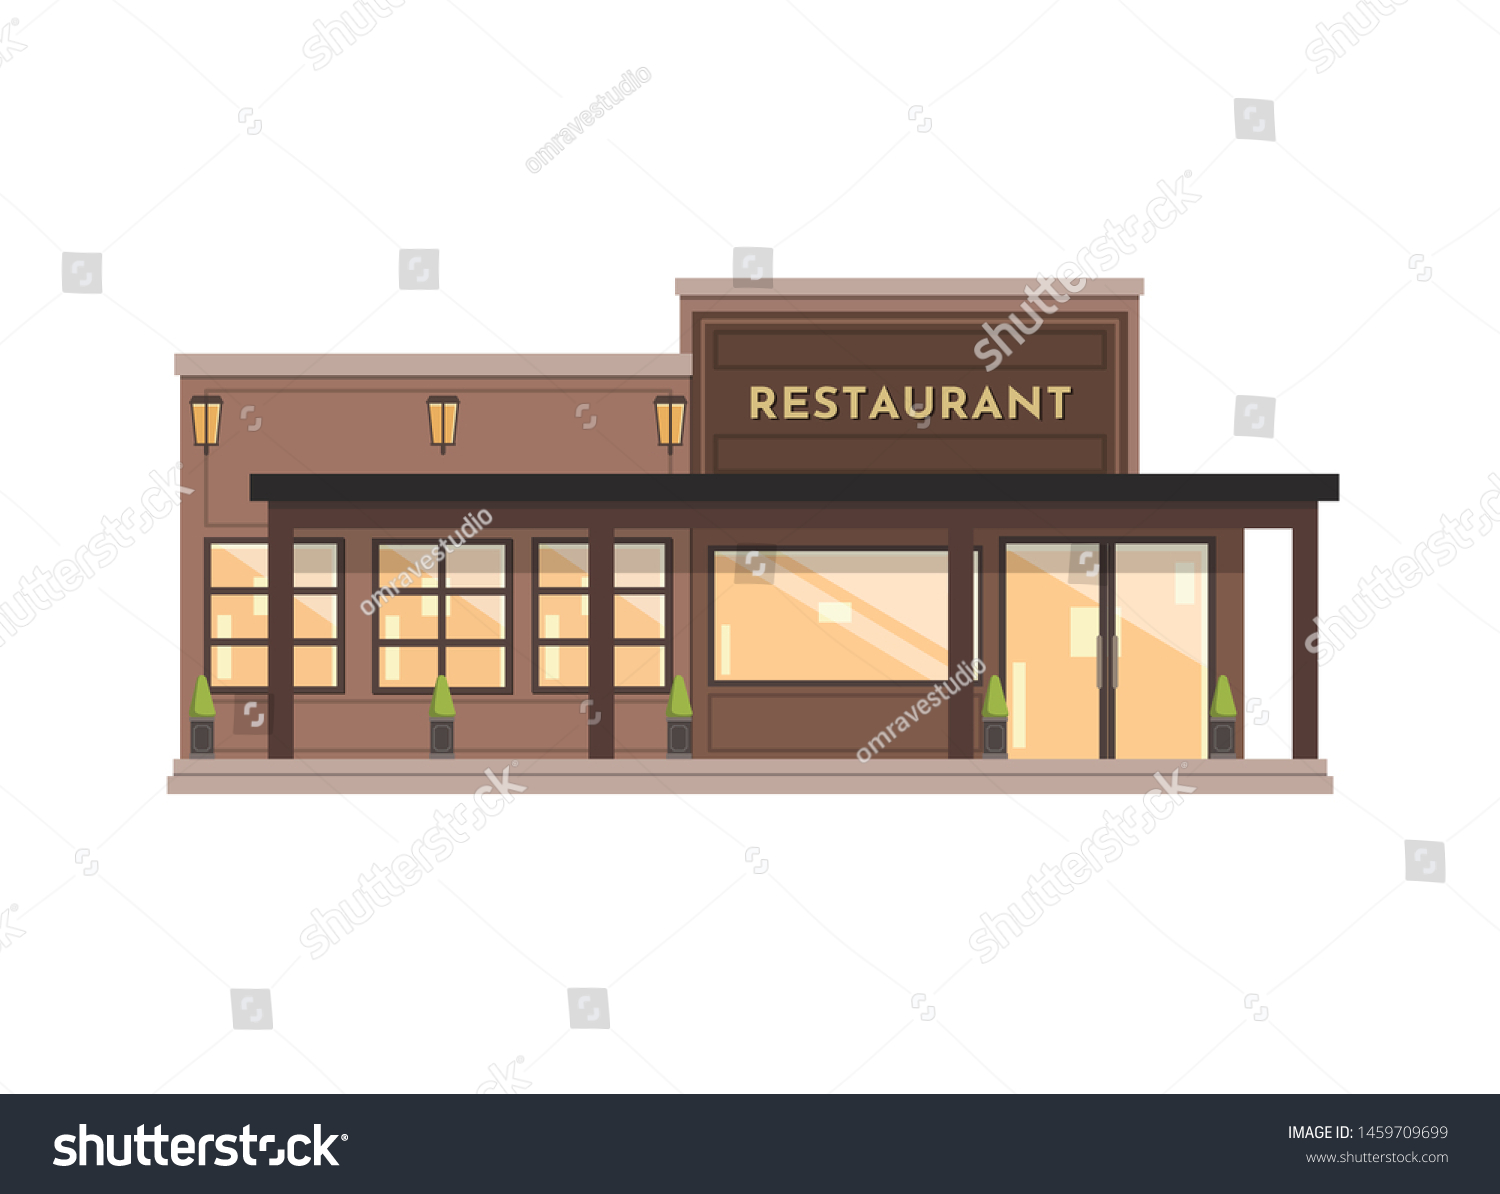 Restaurant Building Illustration Concept Design Stock Vector Royalty Free 1459709699